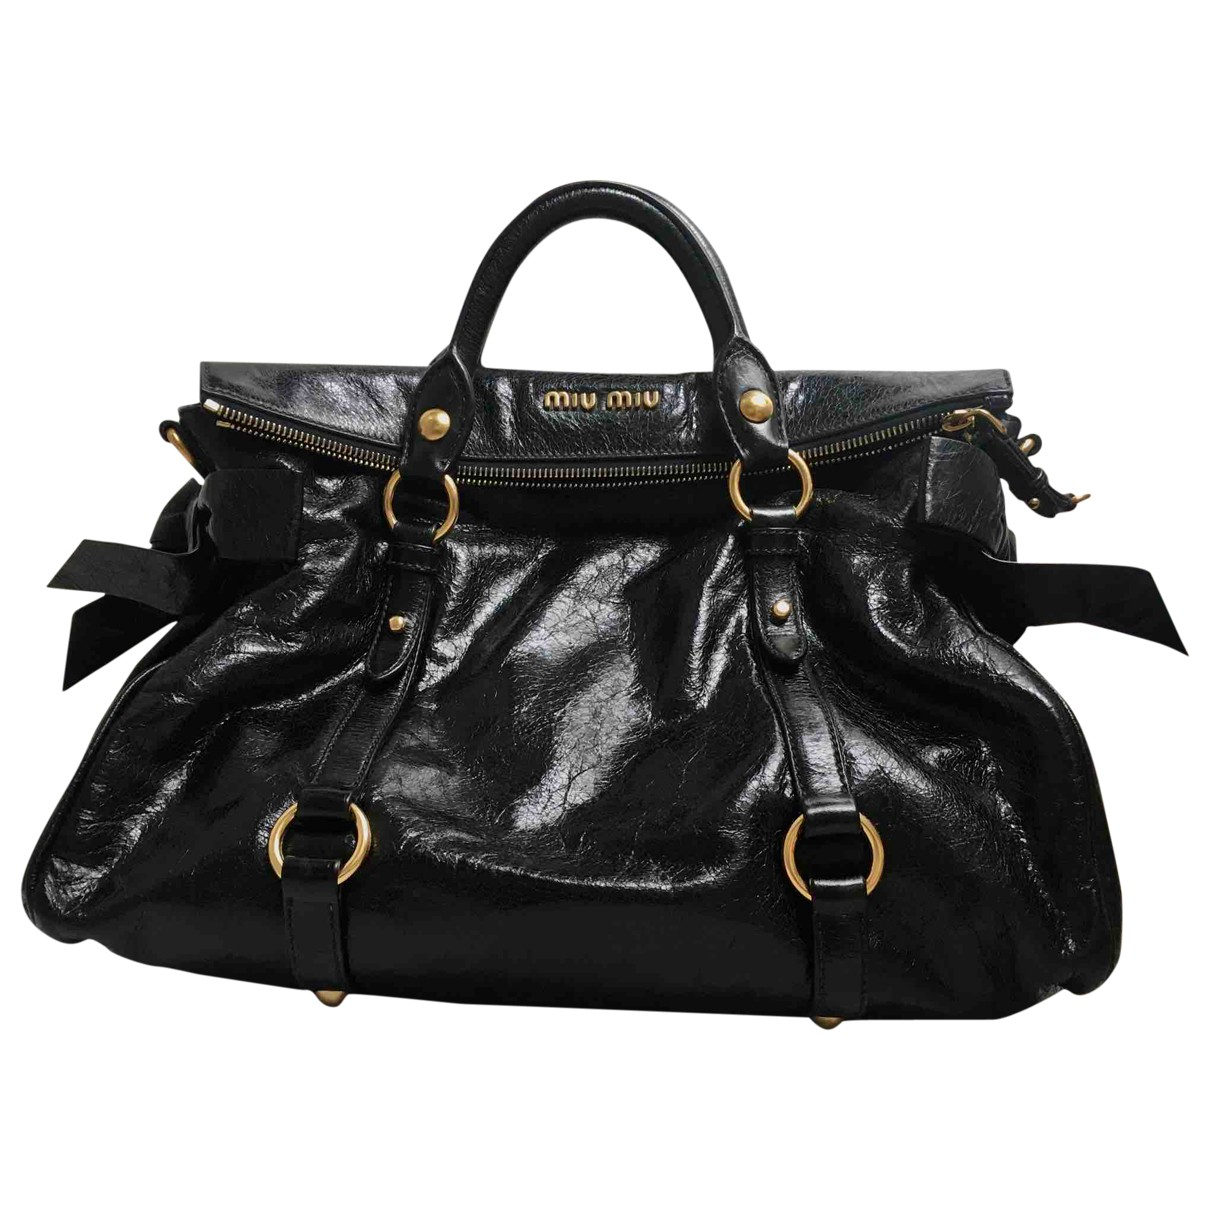 Miu Miu Bow bag Black Leather handbag for Women \N